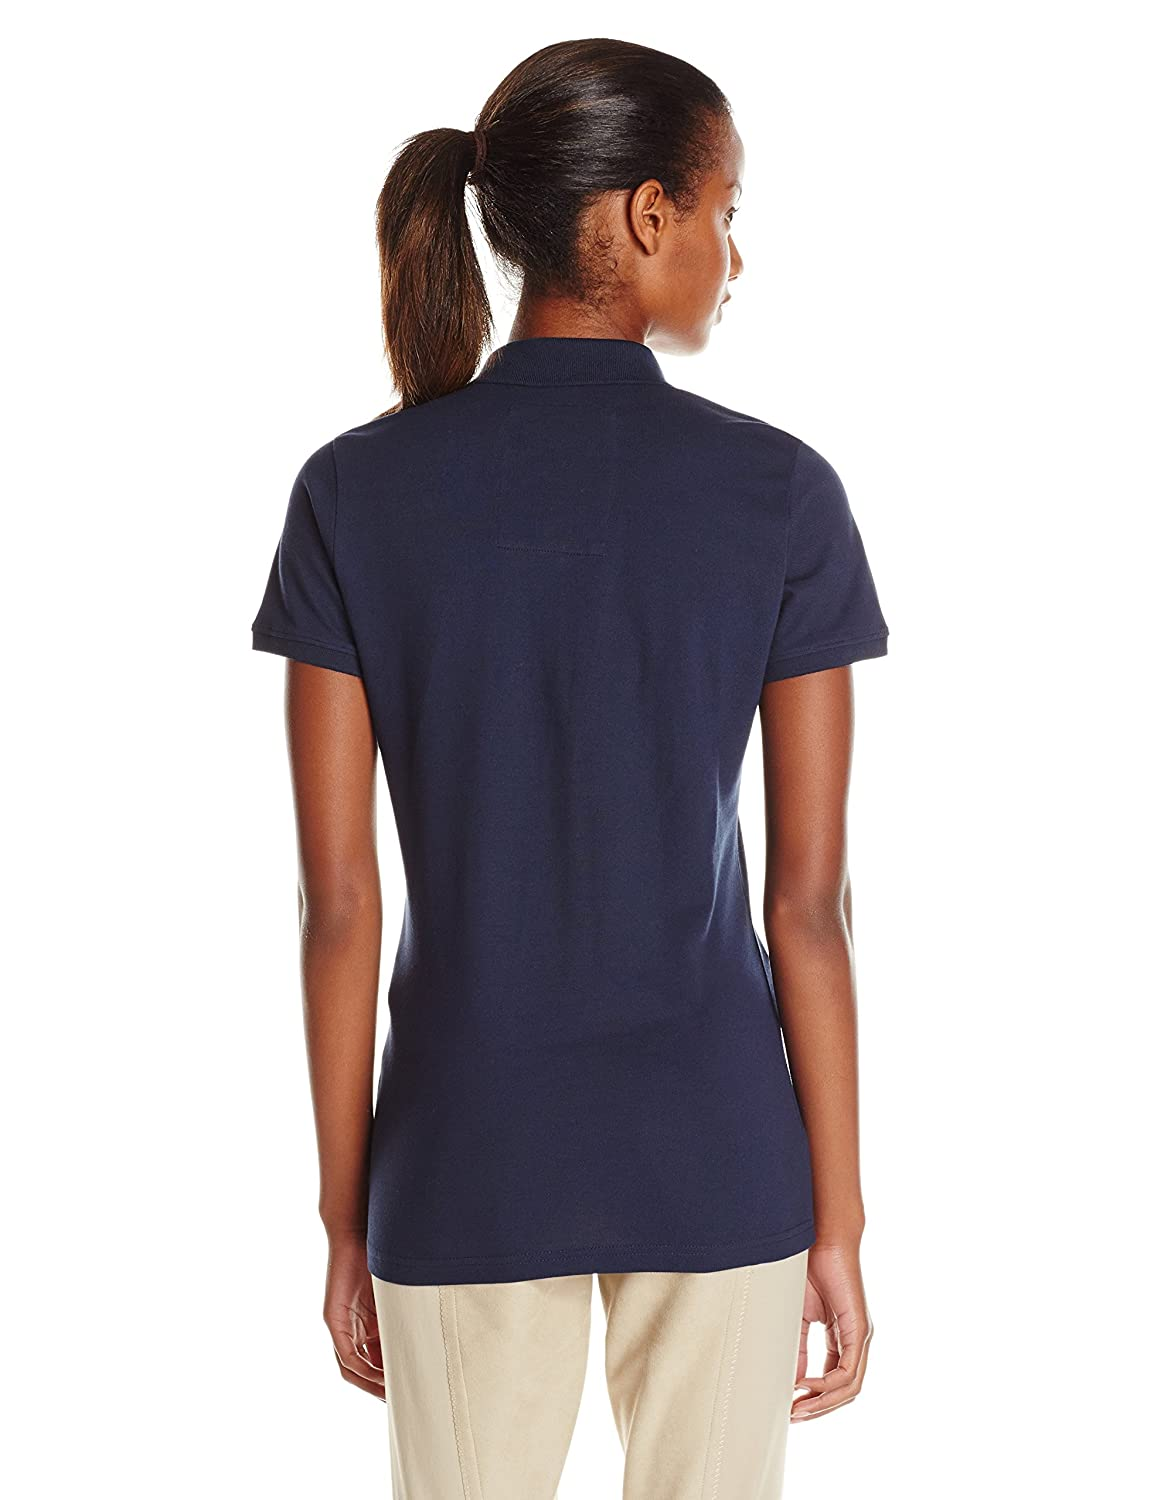 4a46f501bfd5f Ariat Women s Prix Sleeveless Polo  Amazon.ca  Clothing   Accessories